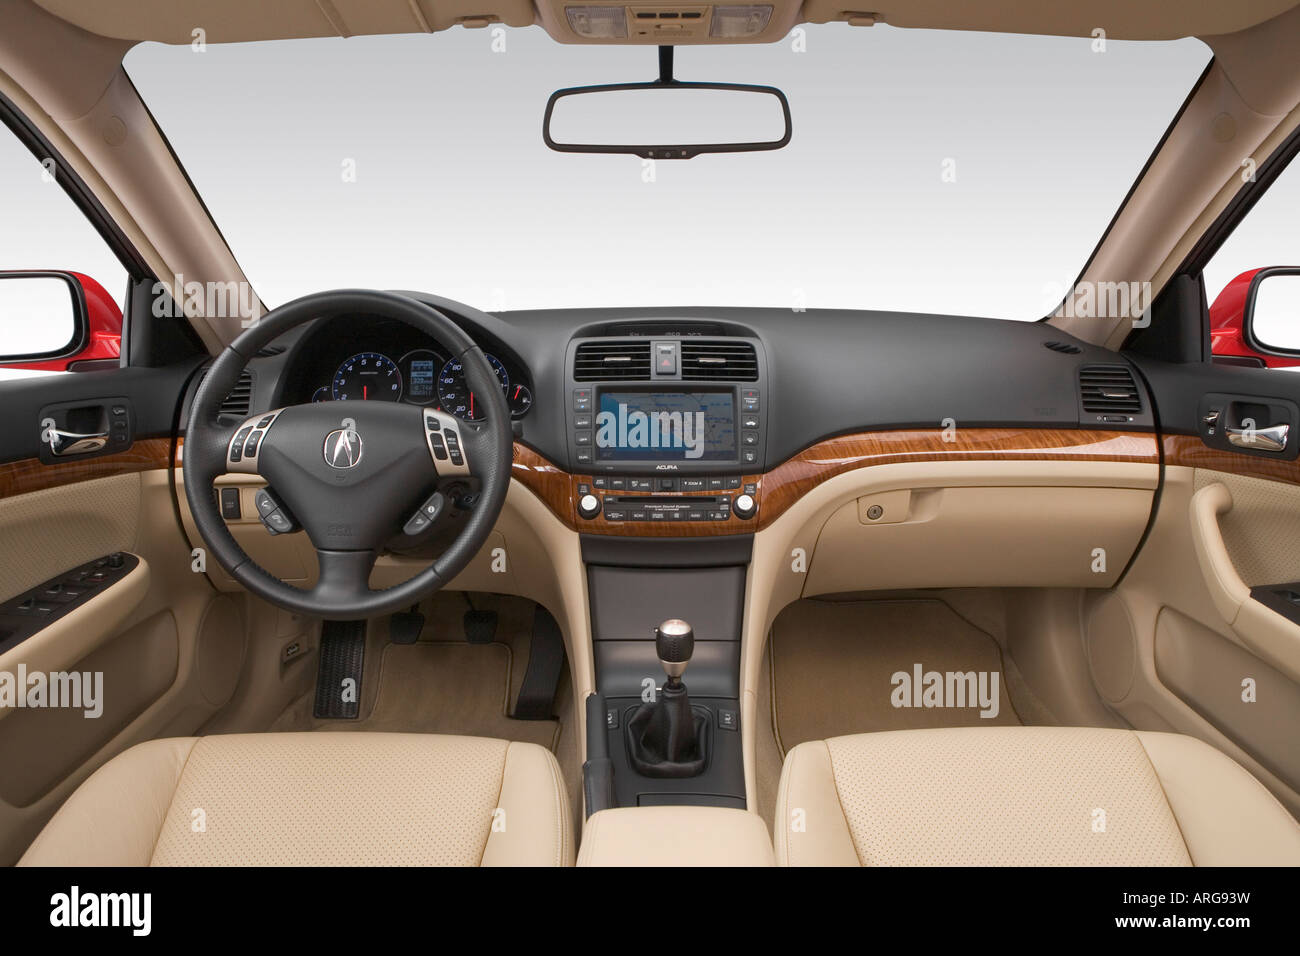 https://c8.alamy.com/comp/ARG93W/2007-acura-tsx-in-red-dashboard-center-console-gear-shifter-view-ARG93W.jpg